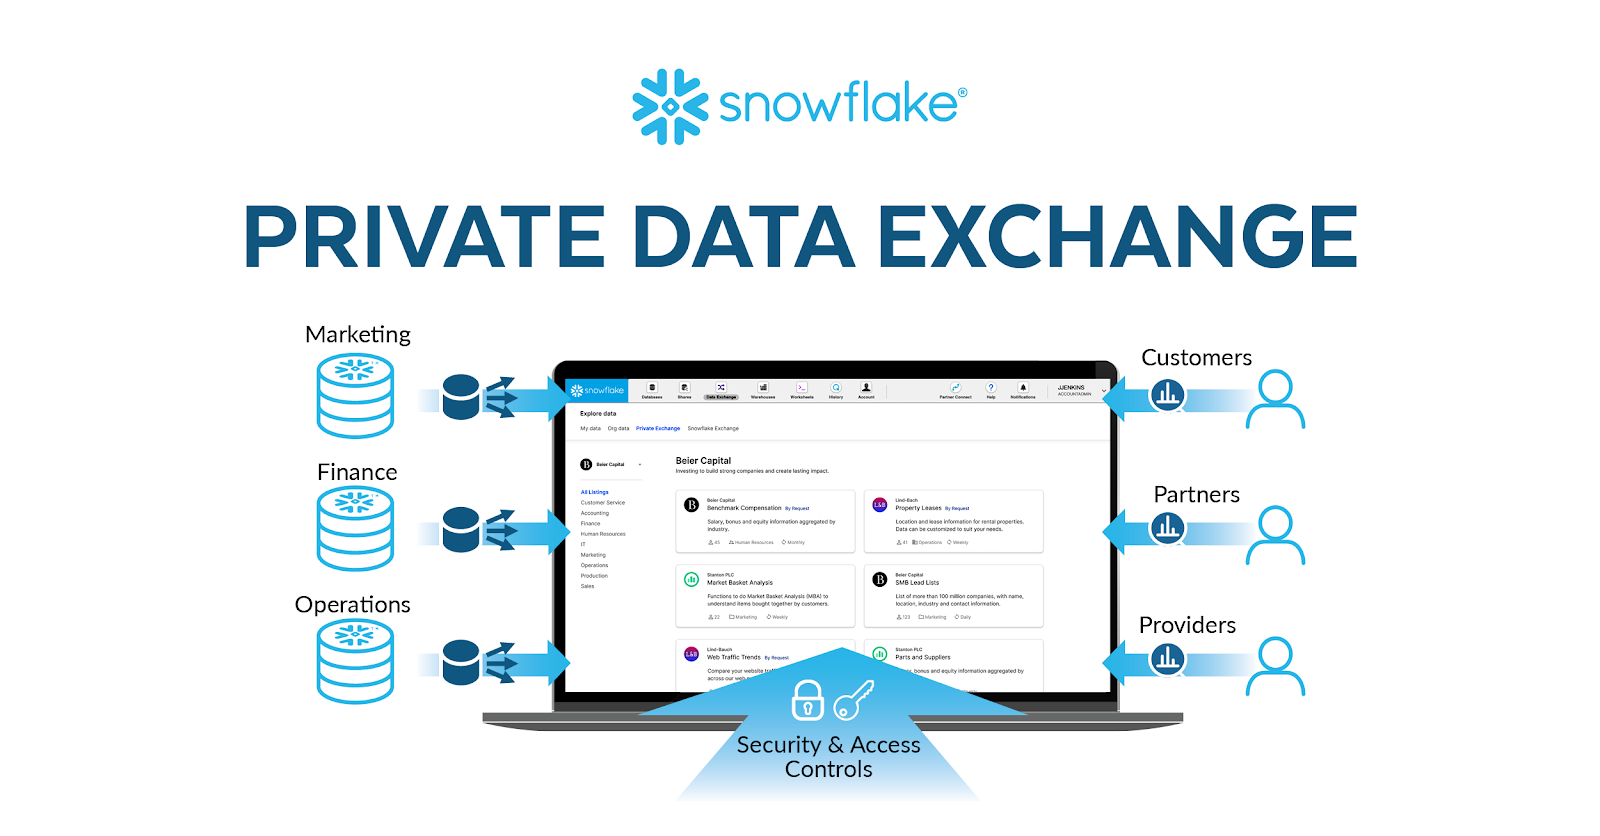 Snowflake launches Private Data Exchange service for secure